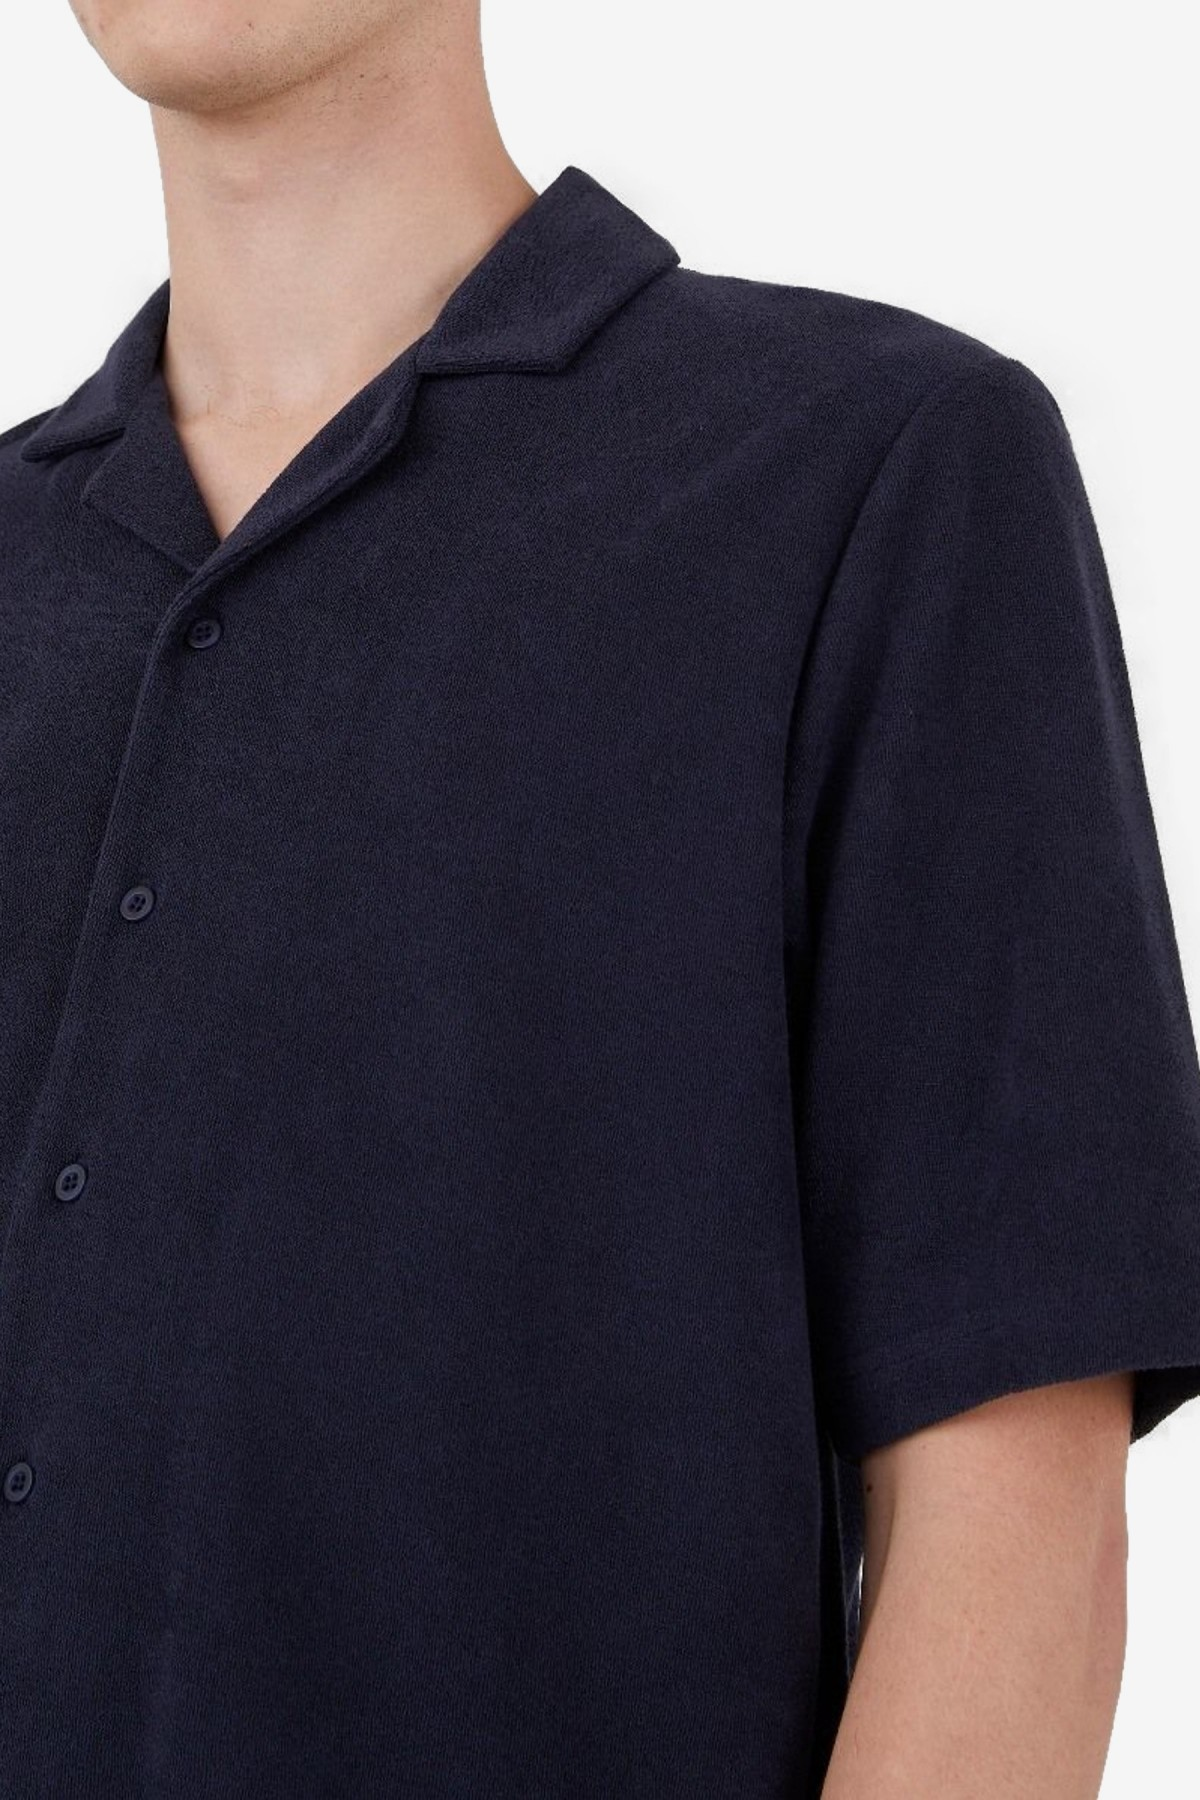 Sunspel Towelling Camp Collar Shirt in Navy